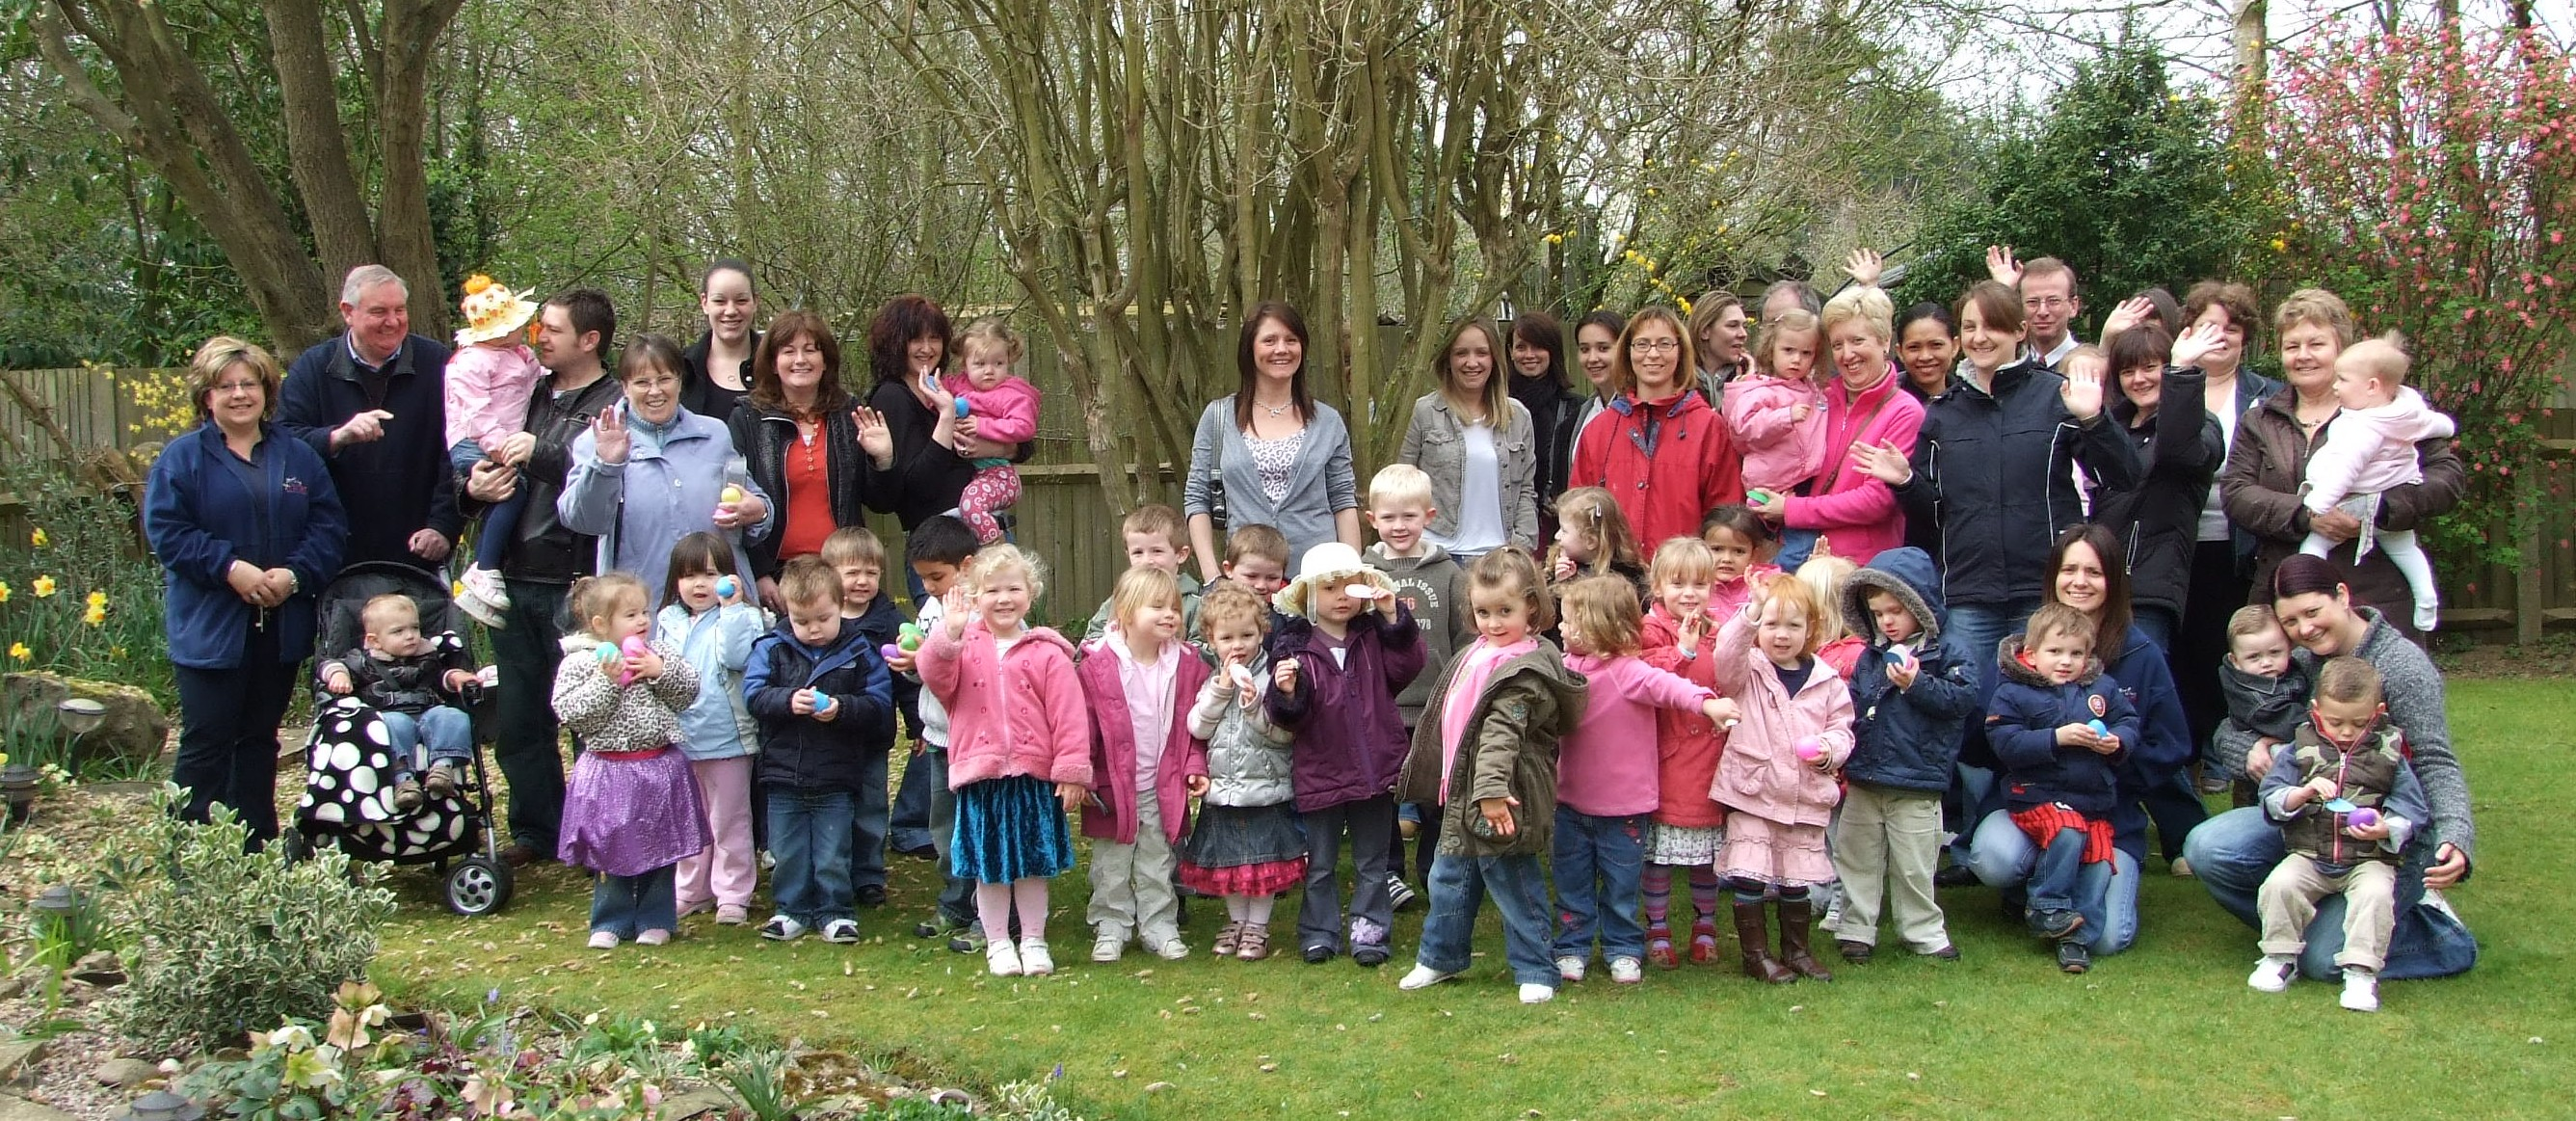 Youngsters at Horley Row Community Pre-school line up for their Easter egg hunt